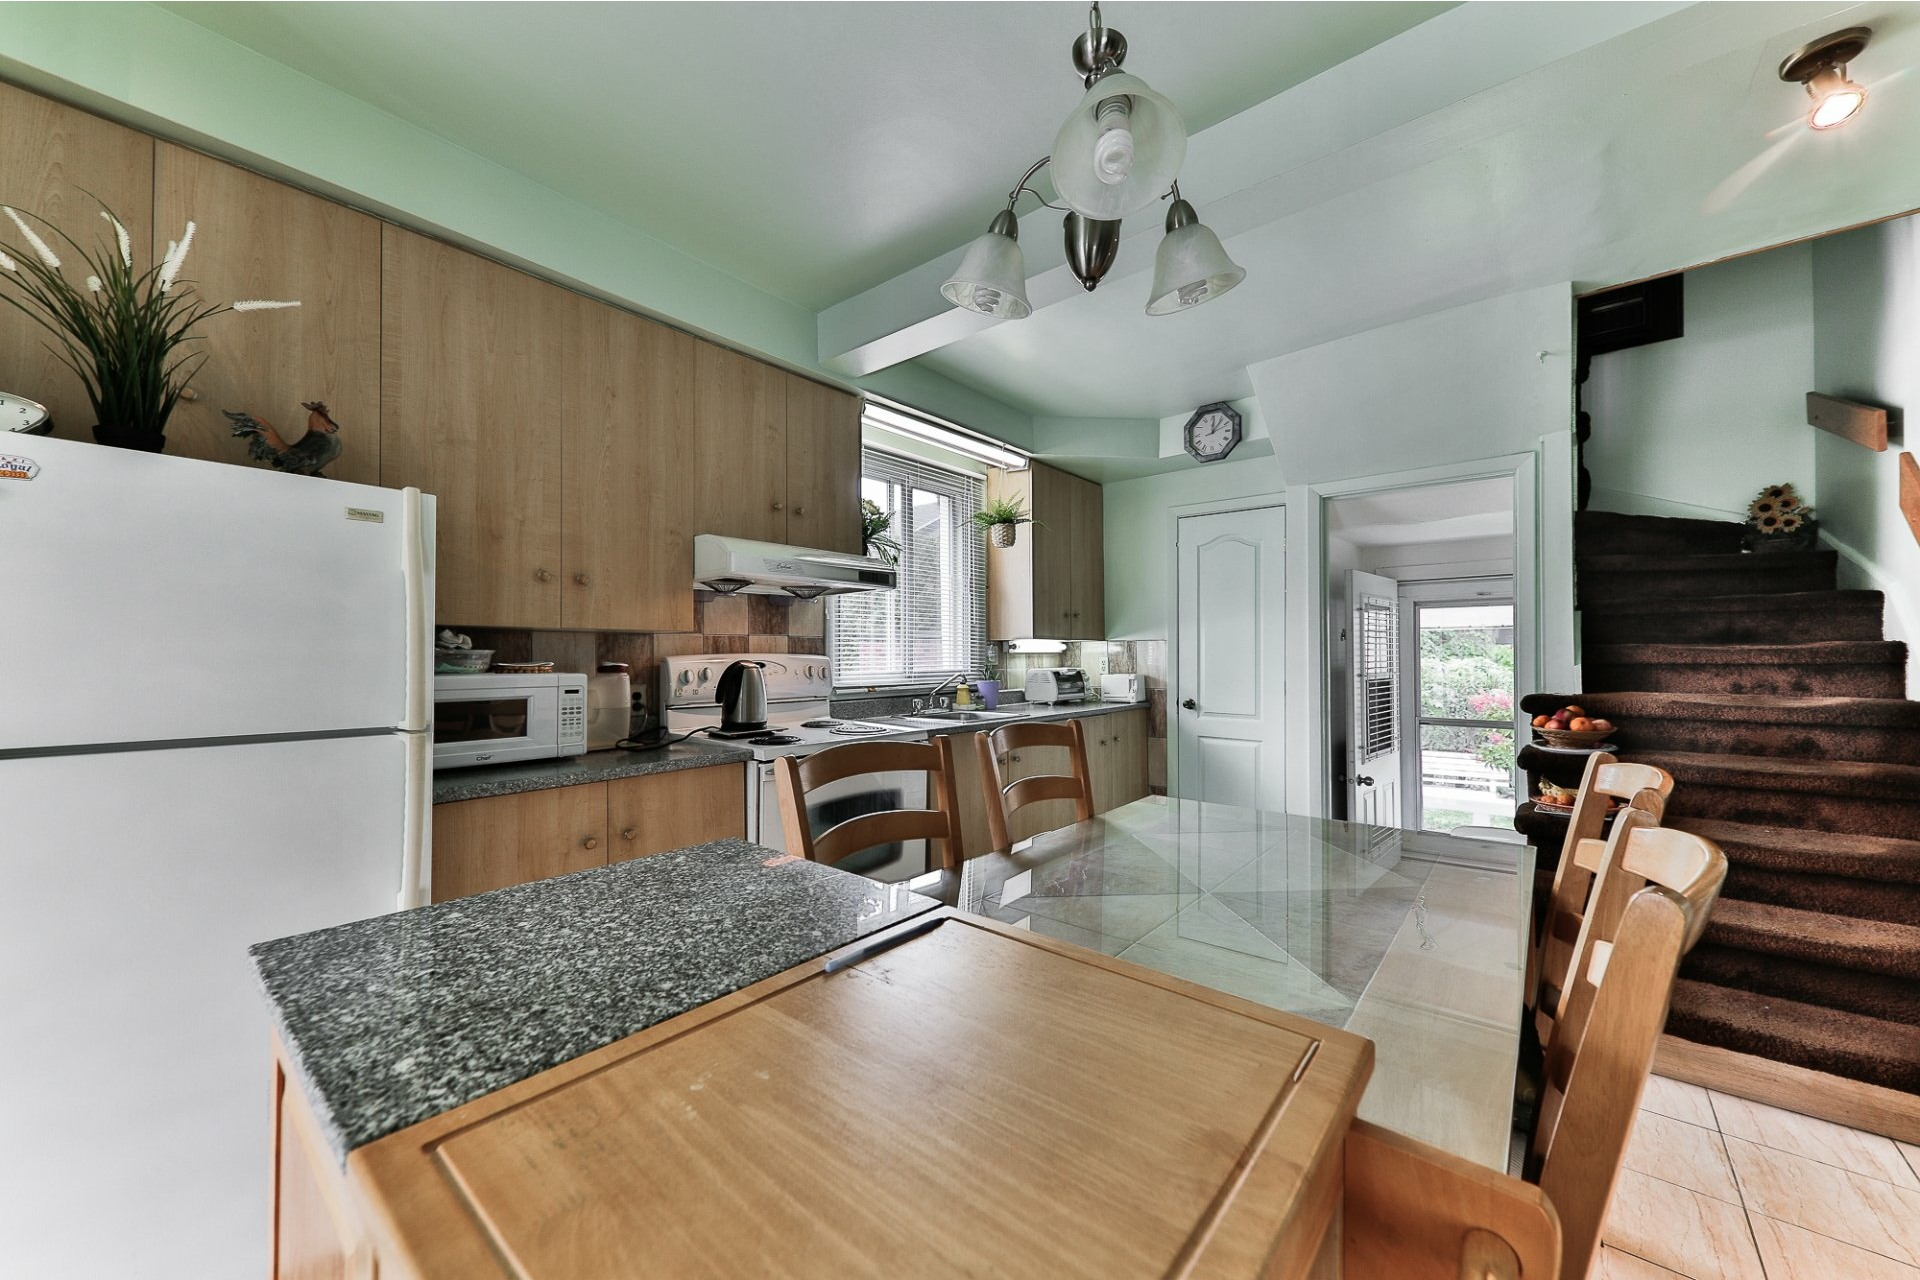 image 22 - House For sale Ahuntsic-Cartierville Montréal  - 8 rooms